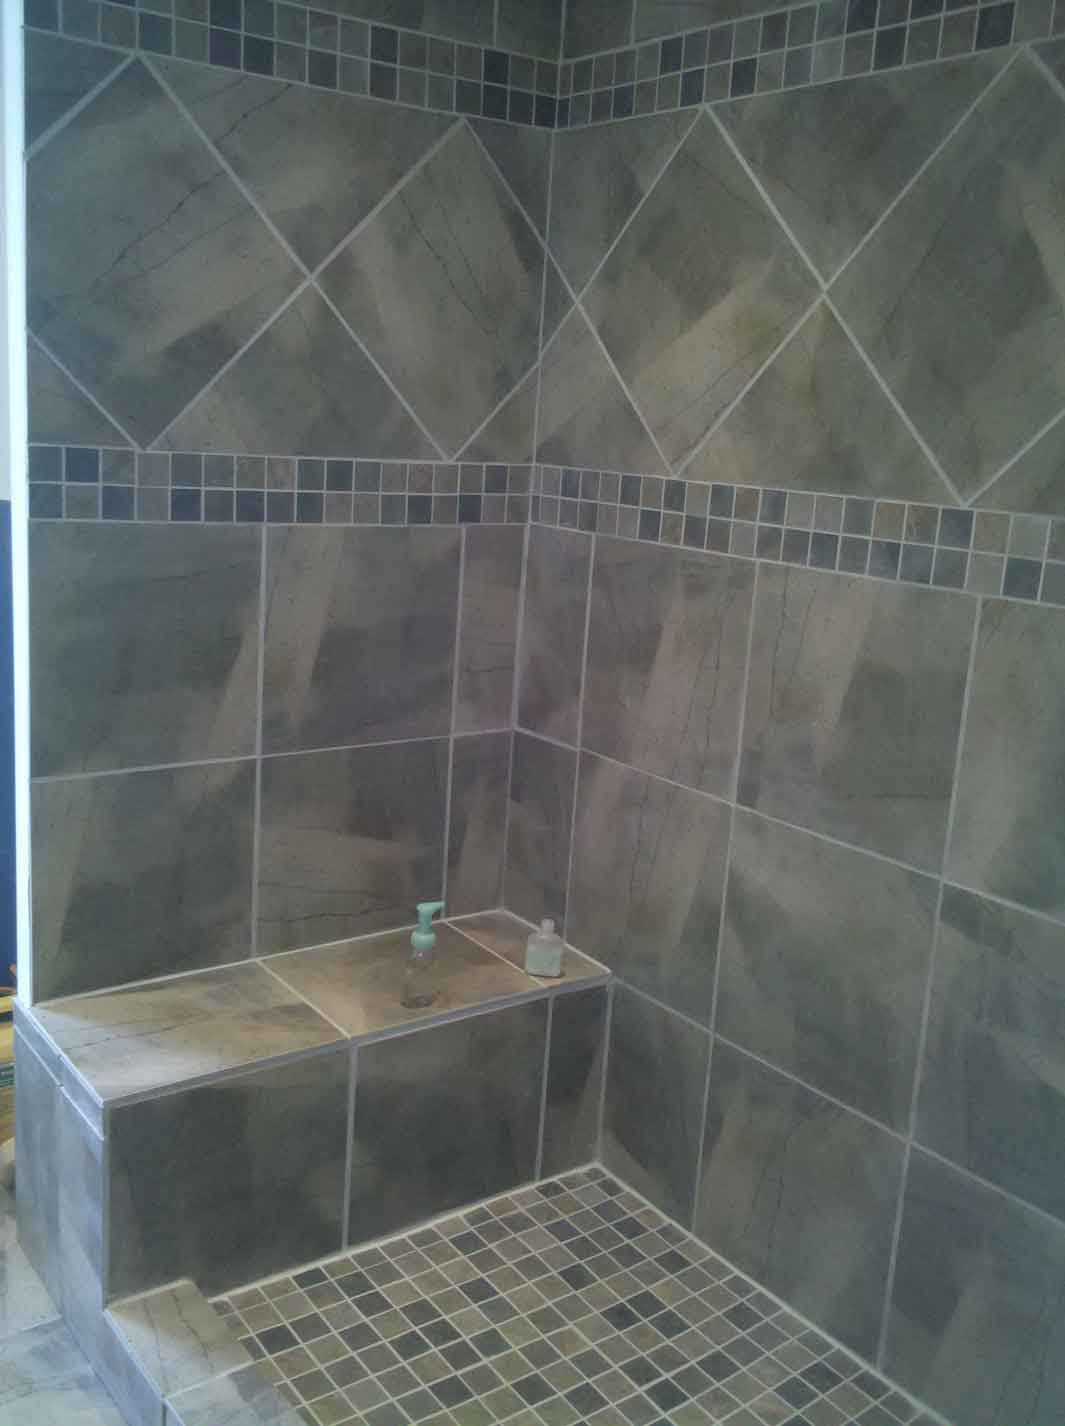 Best Tile For Shower Floor In Grey And Ceramic Tiles Wall Stylish Bathroom